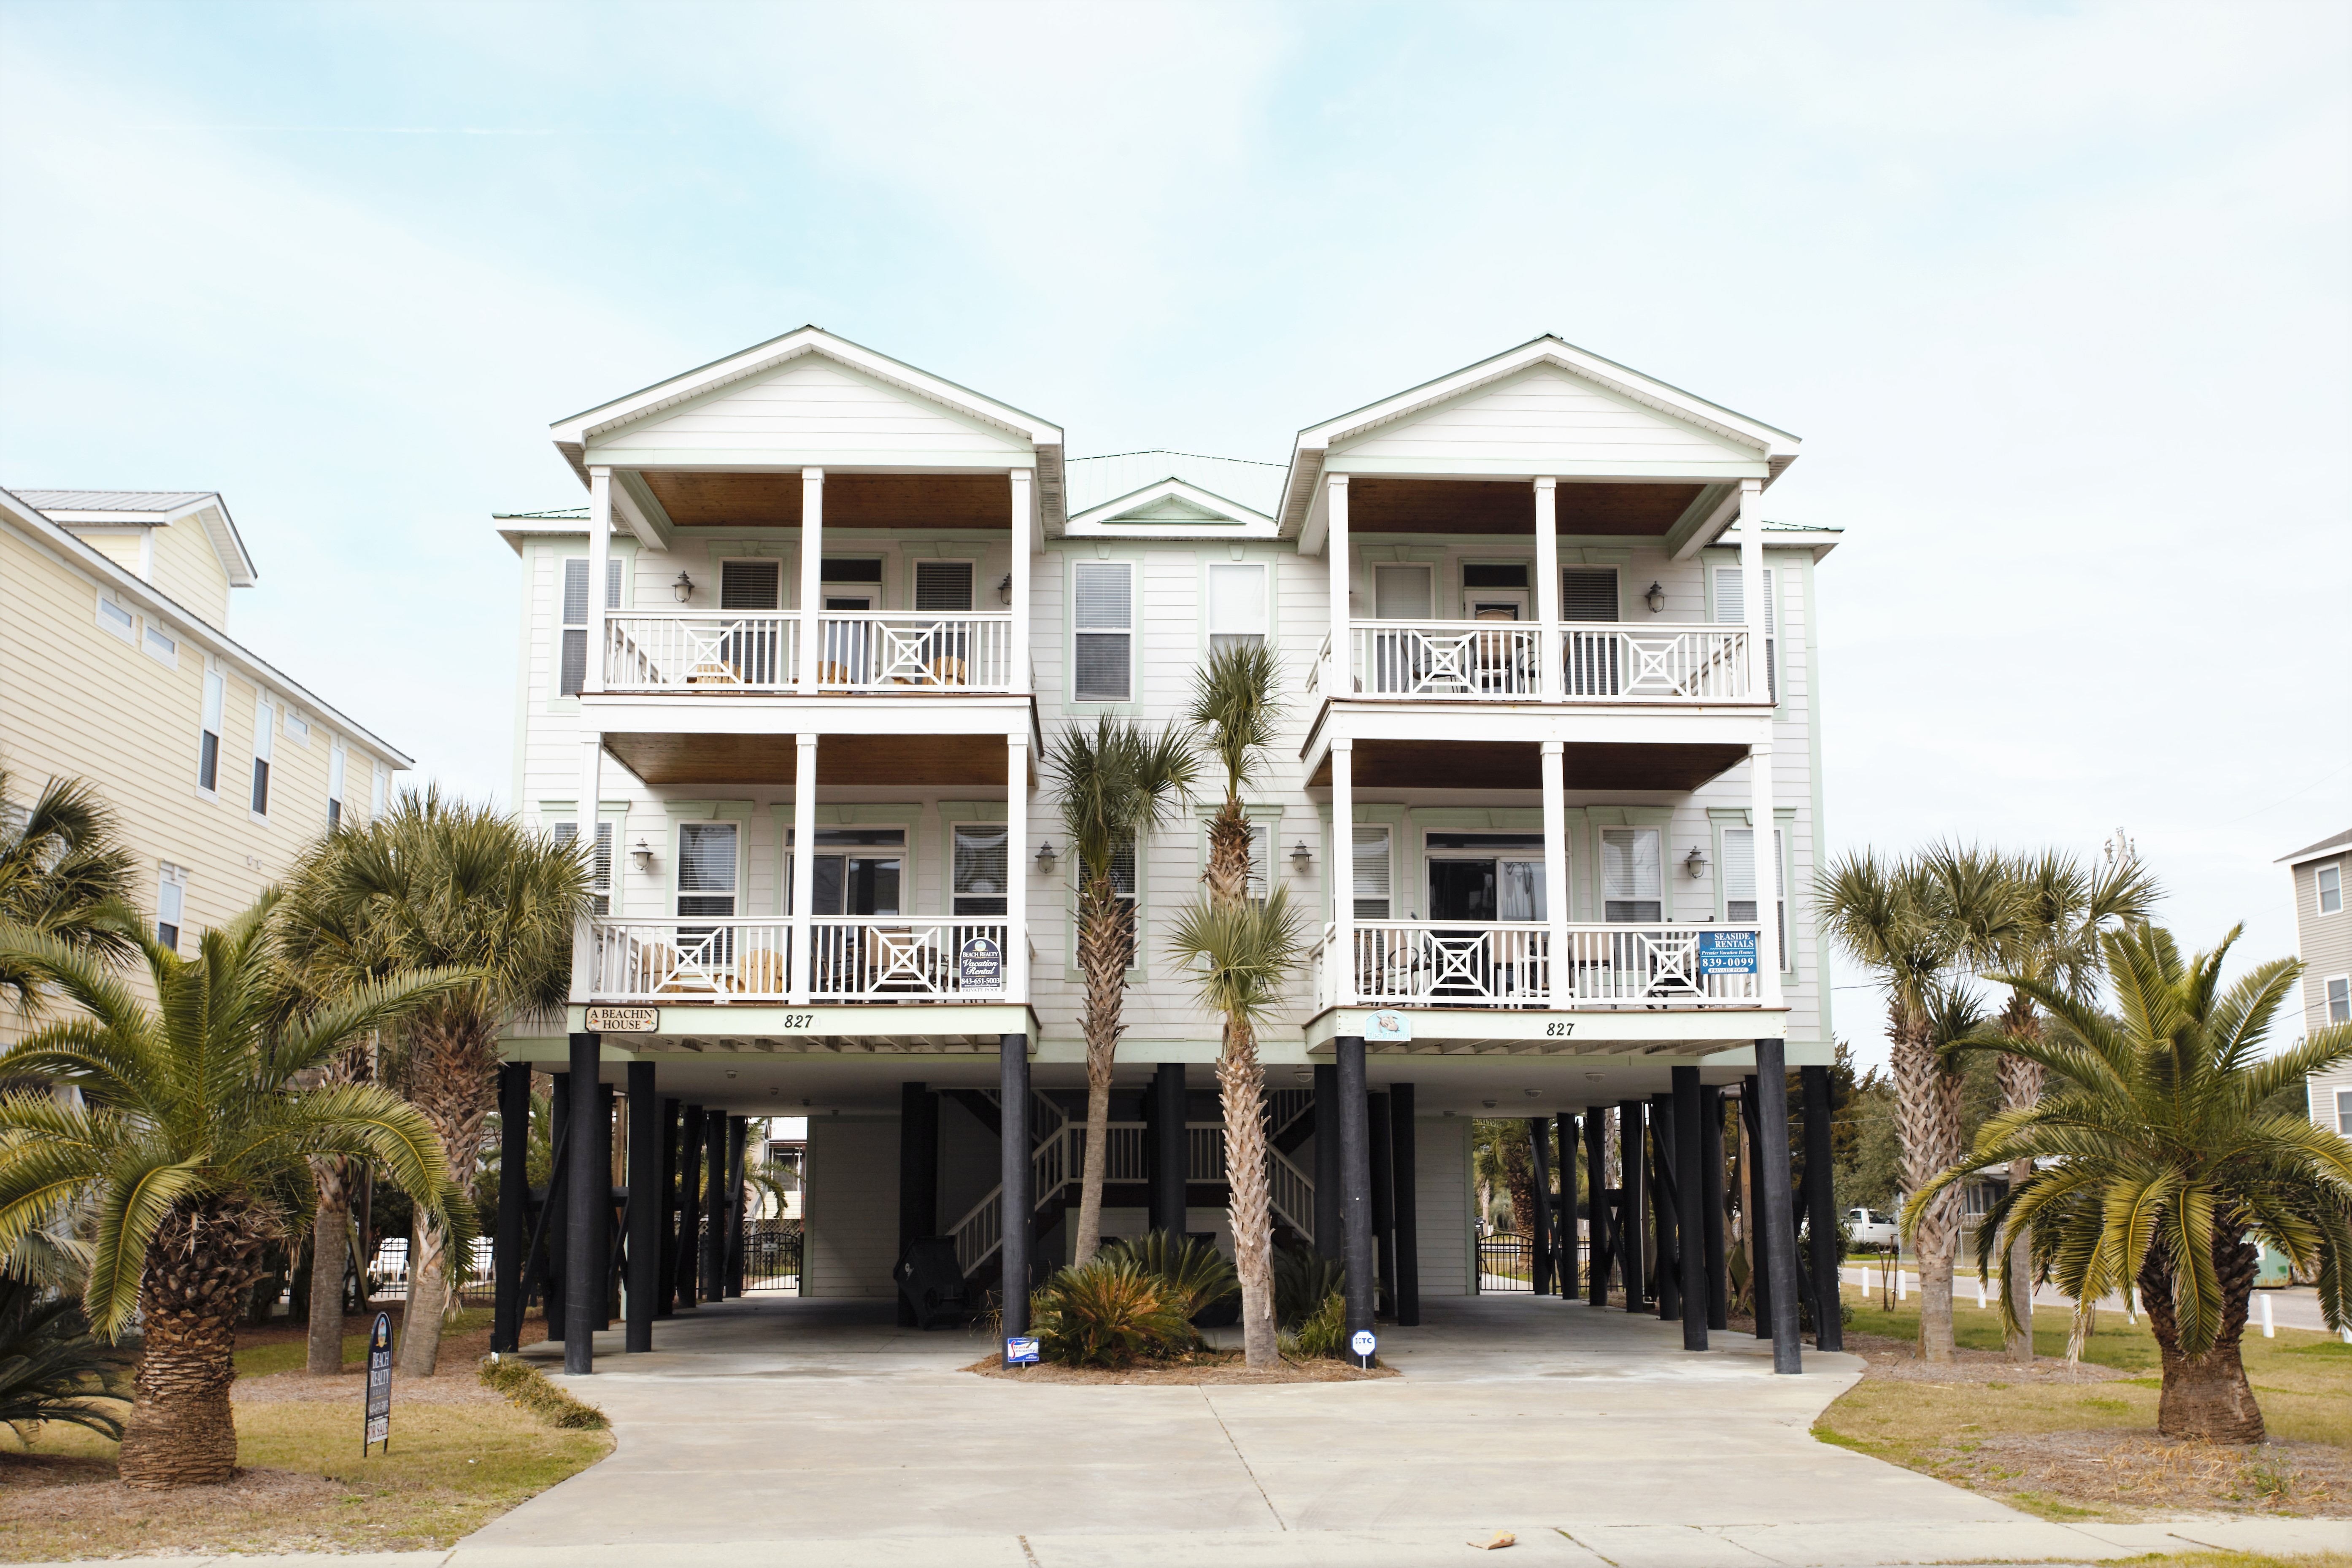 A Beachinu0027 House 827A N. Waccamaw Dr., Garden City, SC 29576. Beach Realty